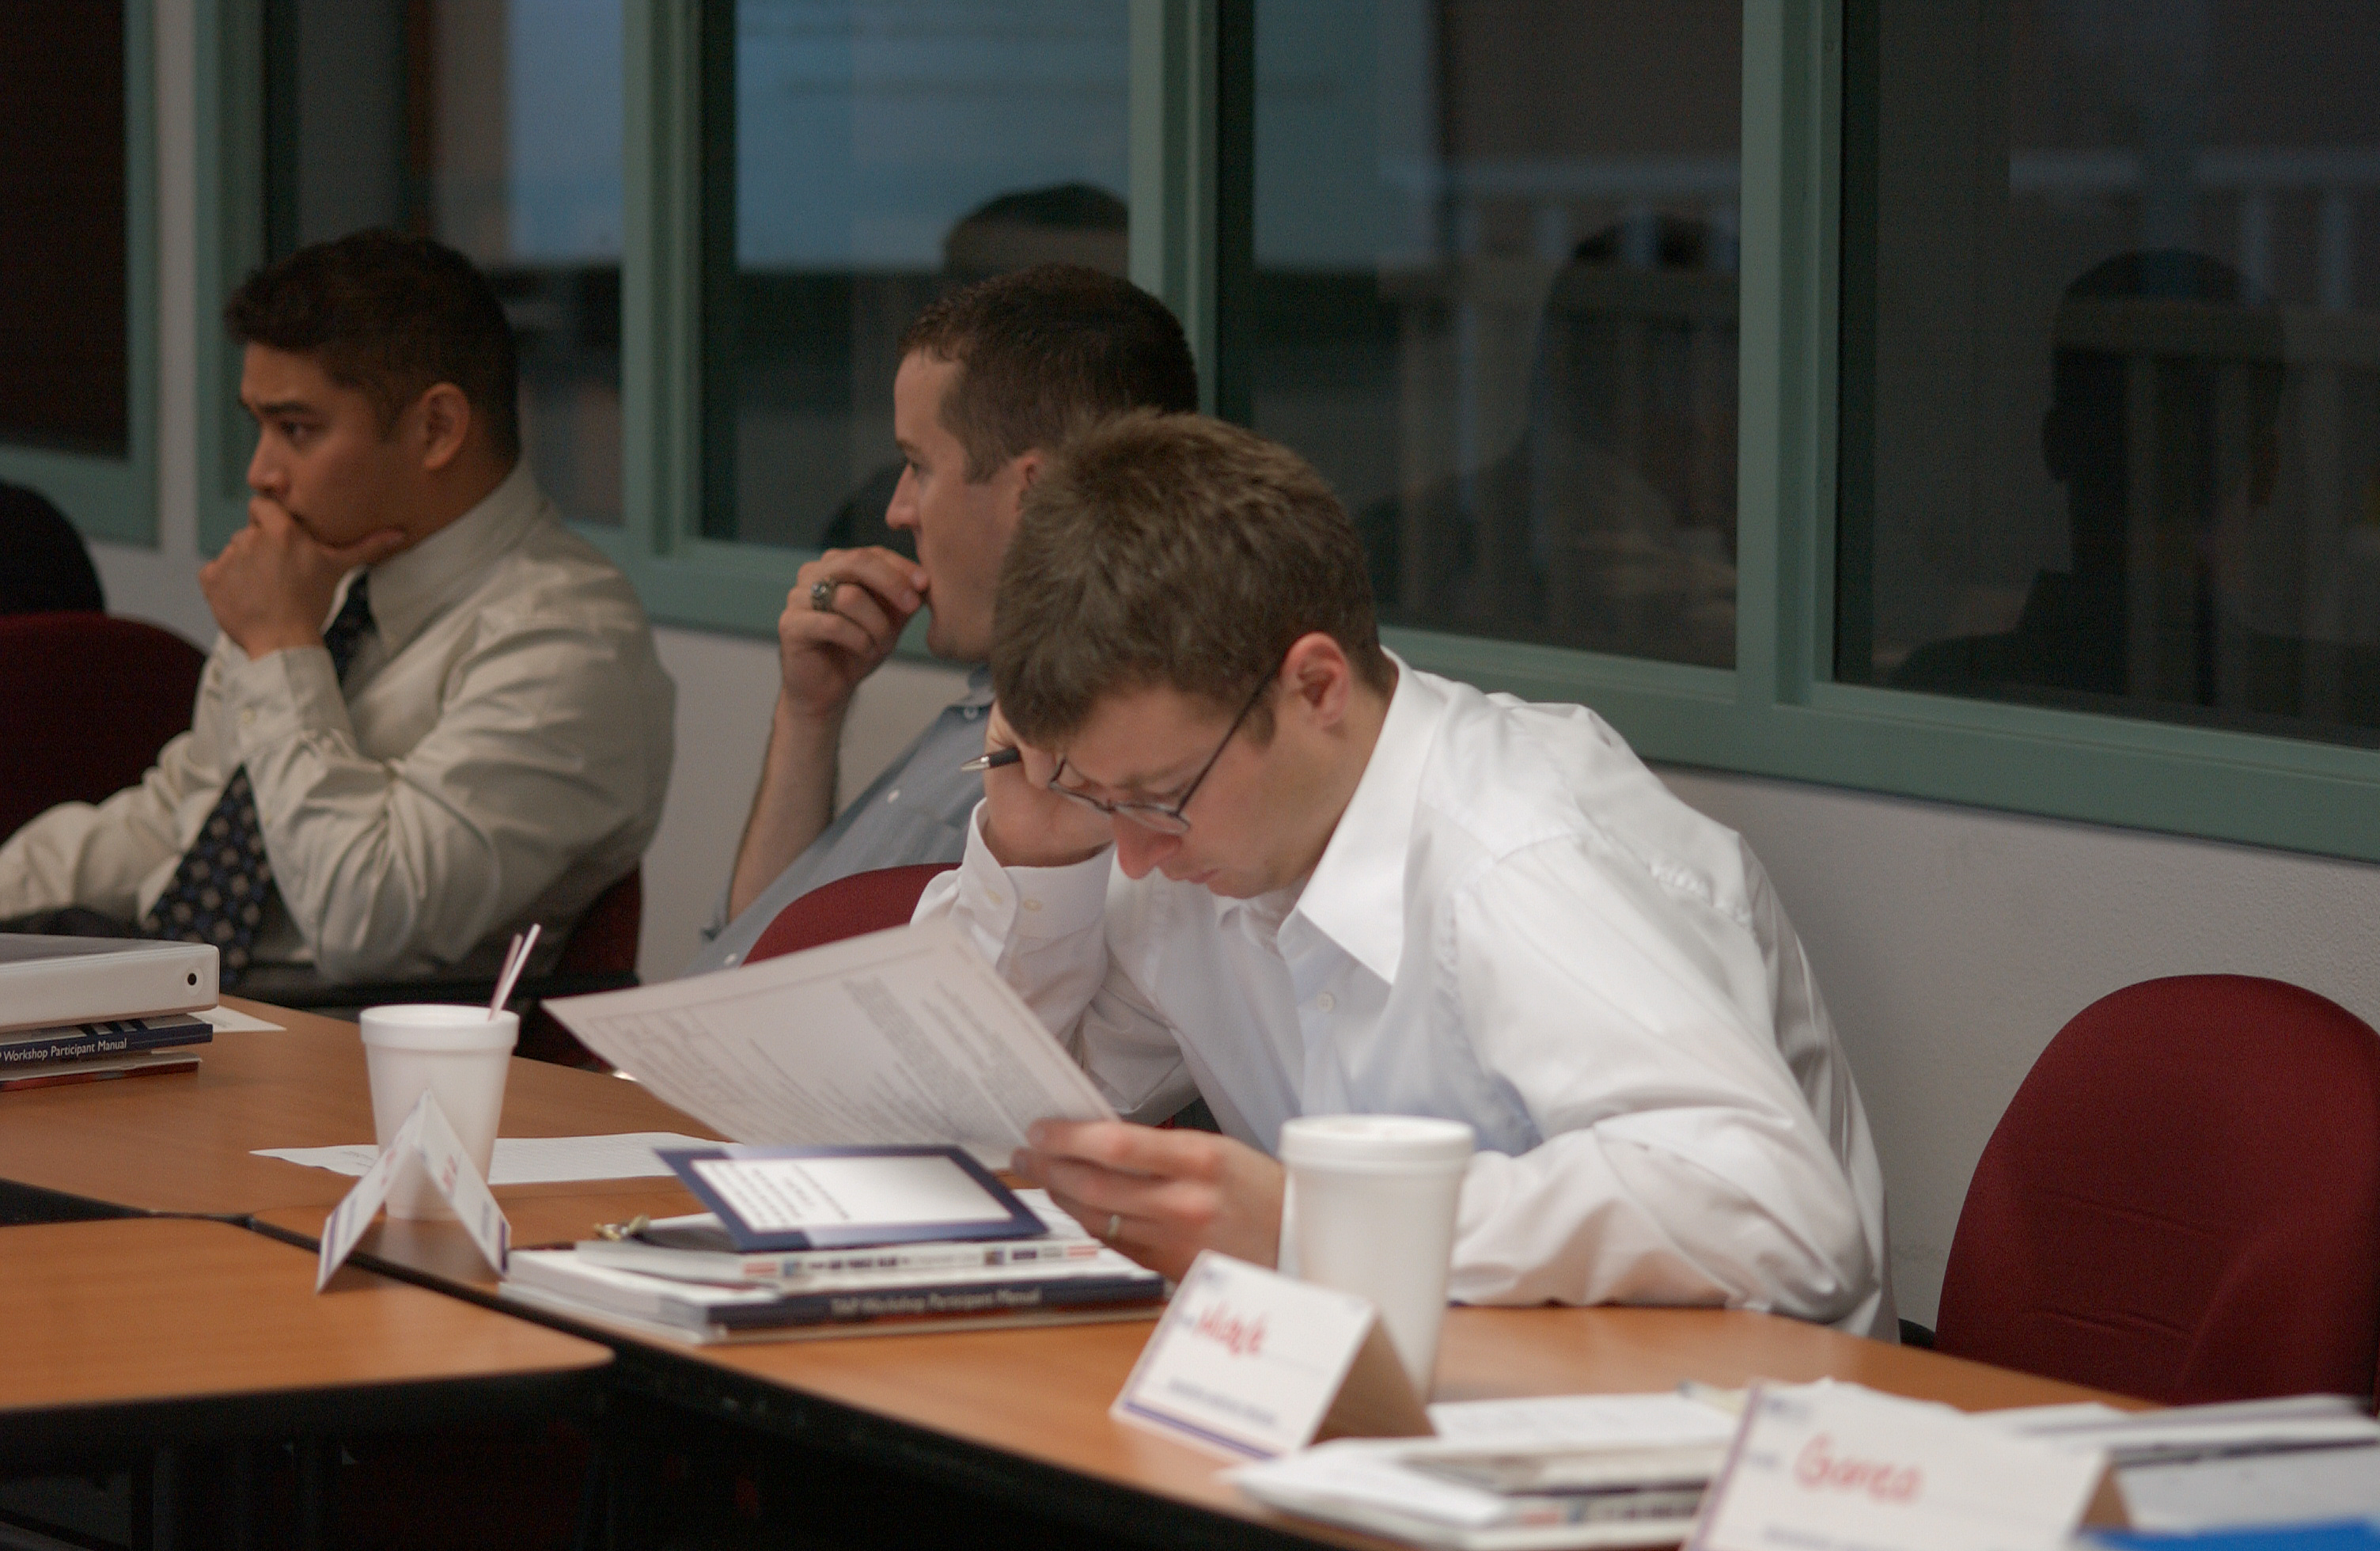 AFRC class helps servicemembers transition to civilian life